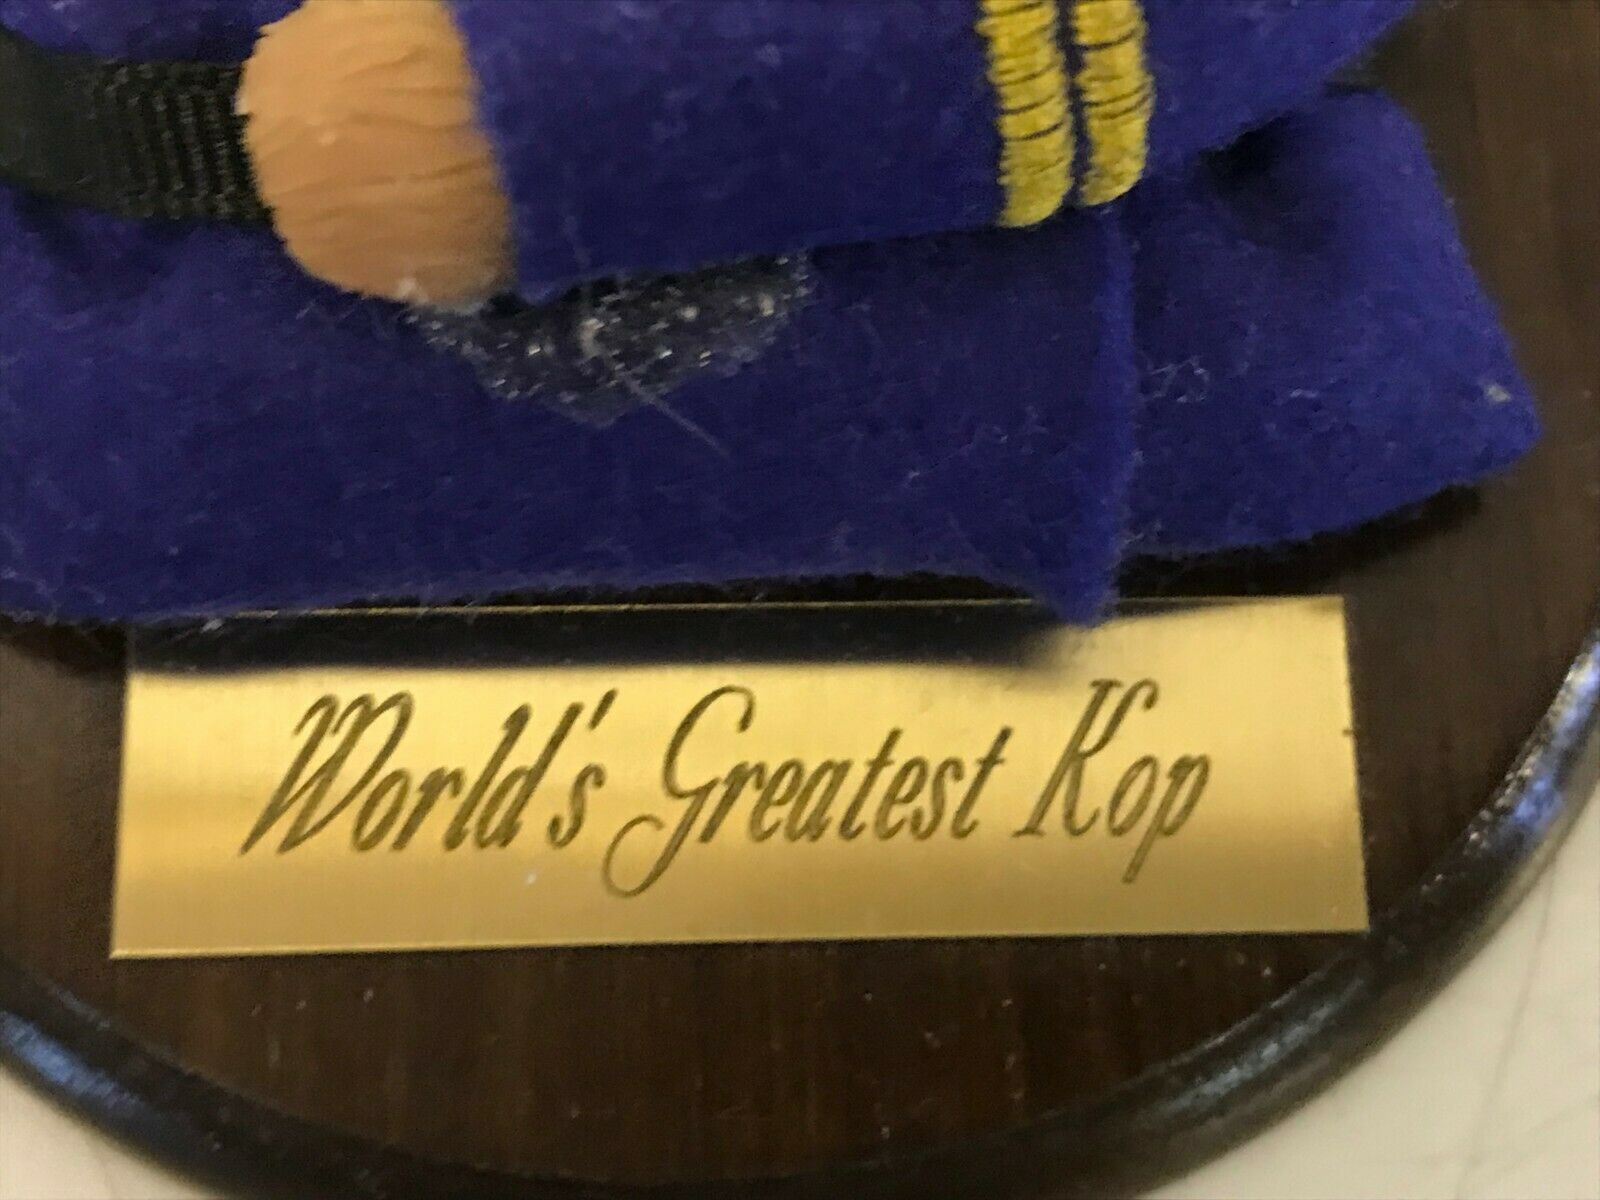 Life's attractions worlds greatest kop bulldog anglais plaque